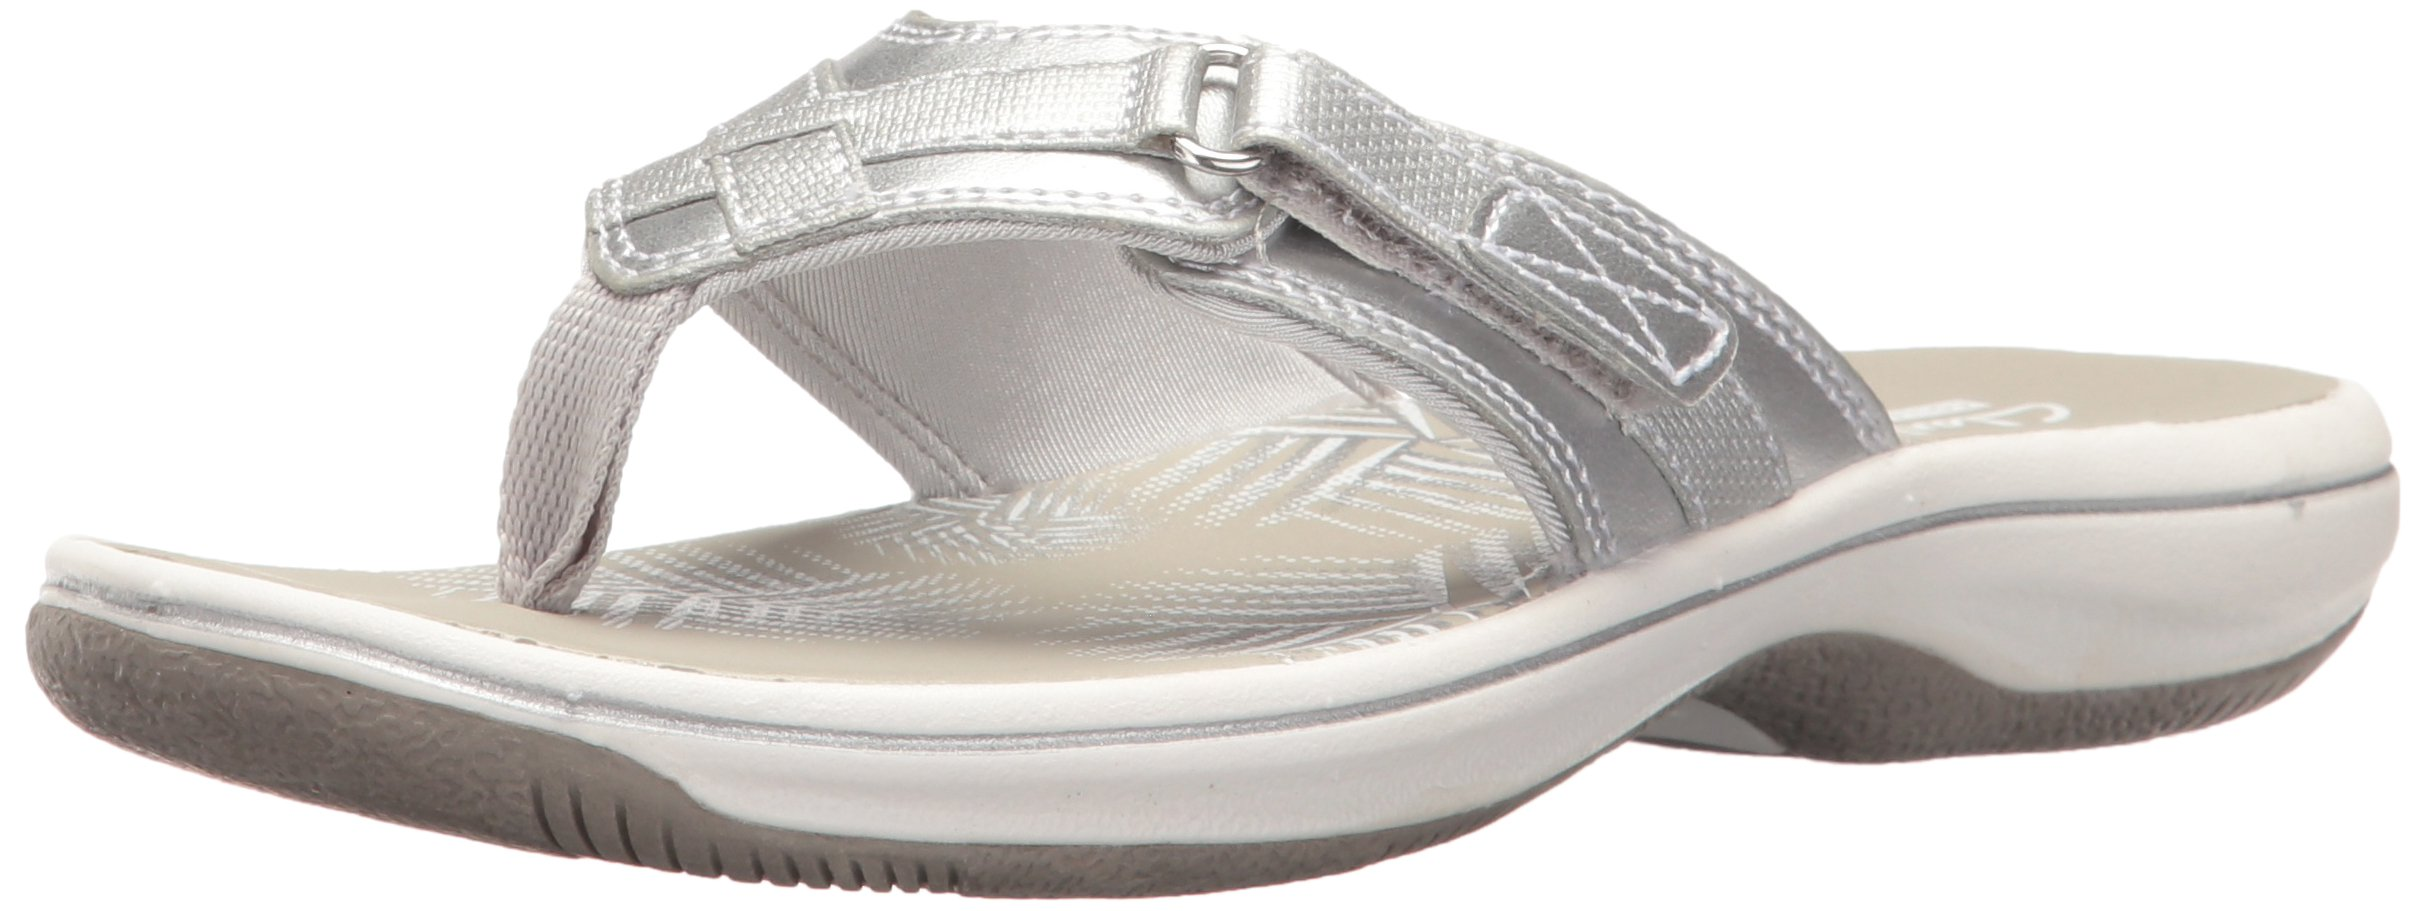 Clarks Women's Breeze Sea Flip Flop, New Silver Synthetic, 8 B(M) US